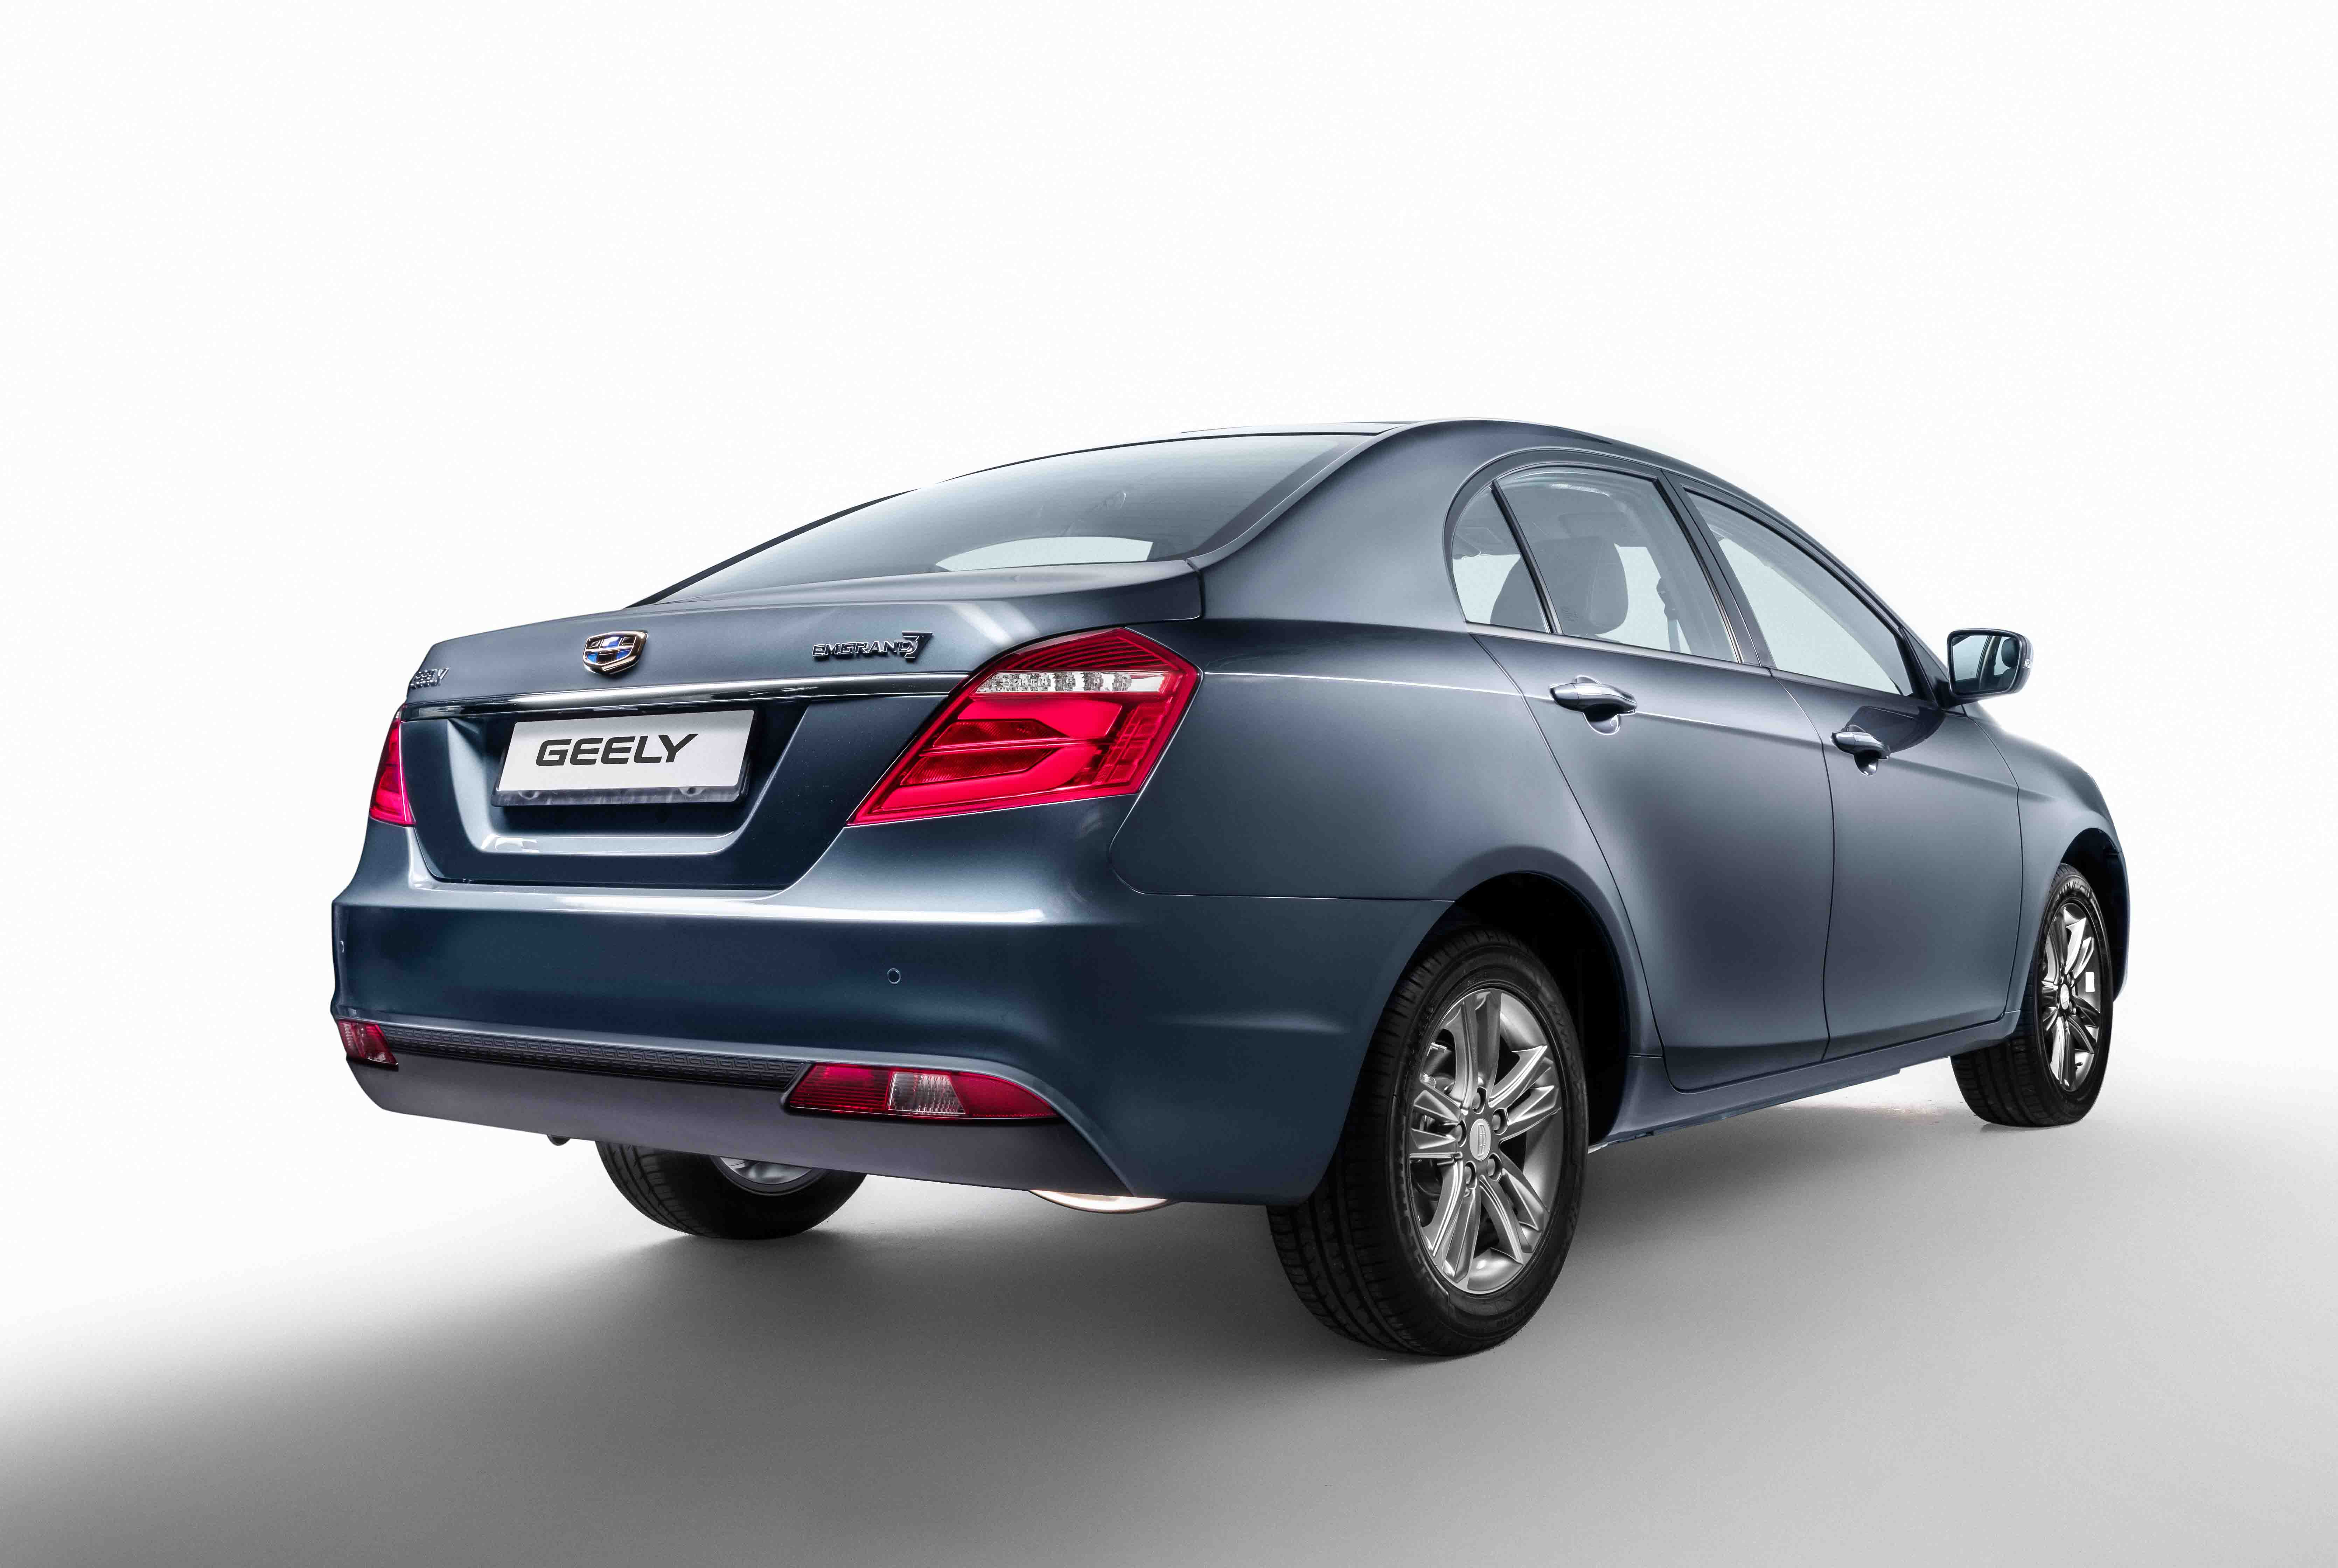 Geely Emgrand 7 best big